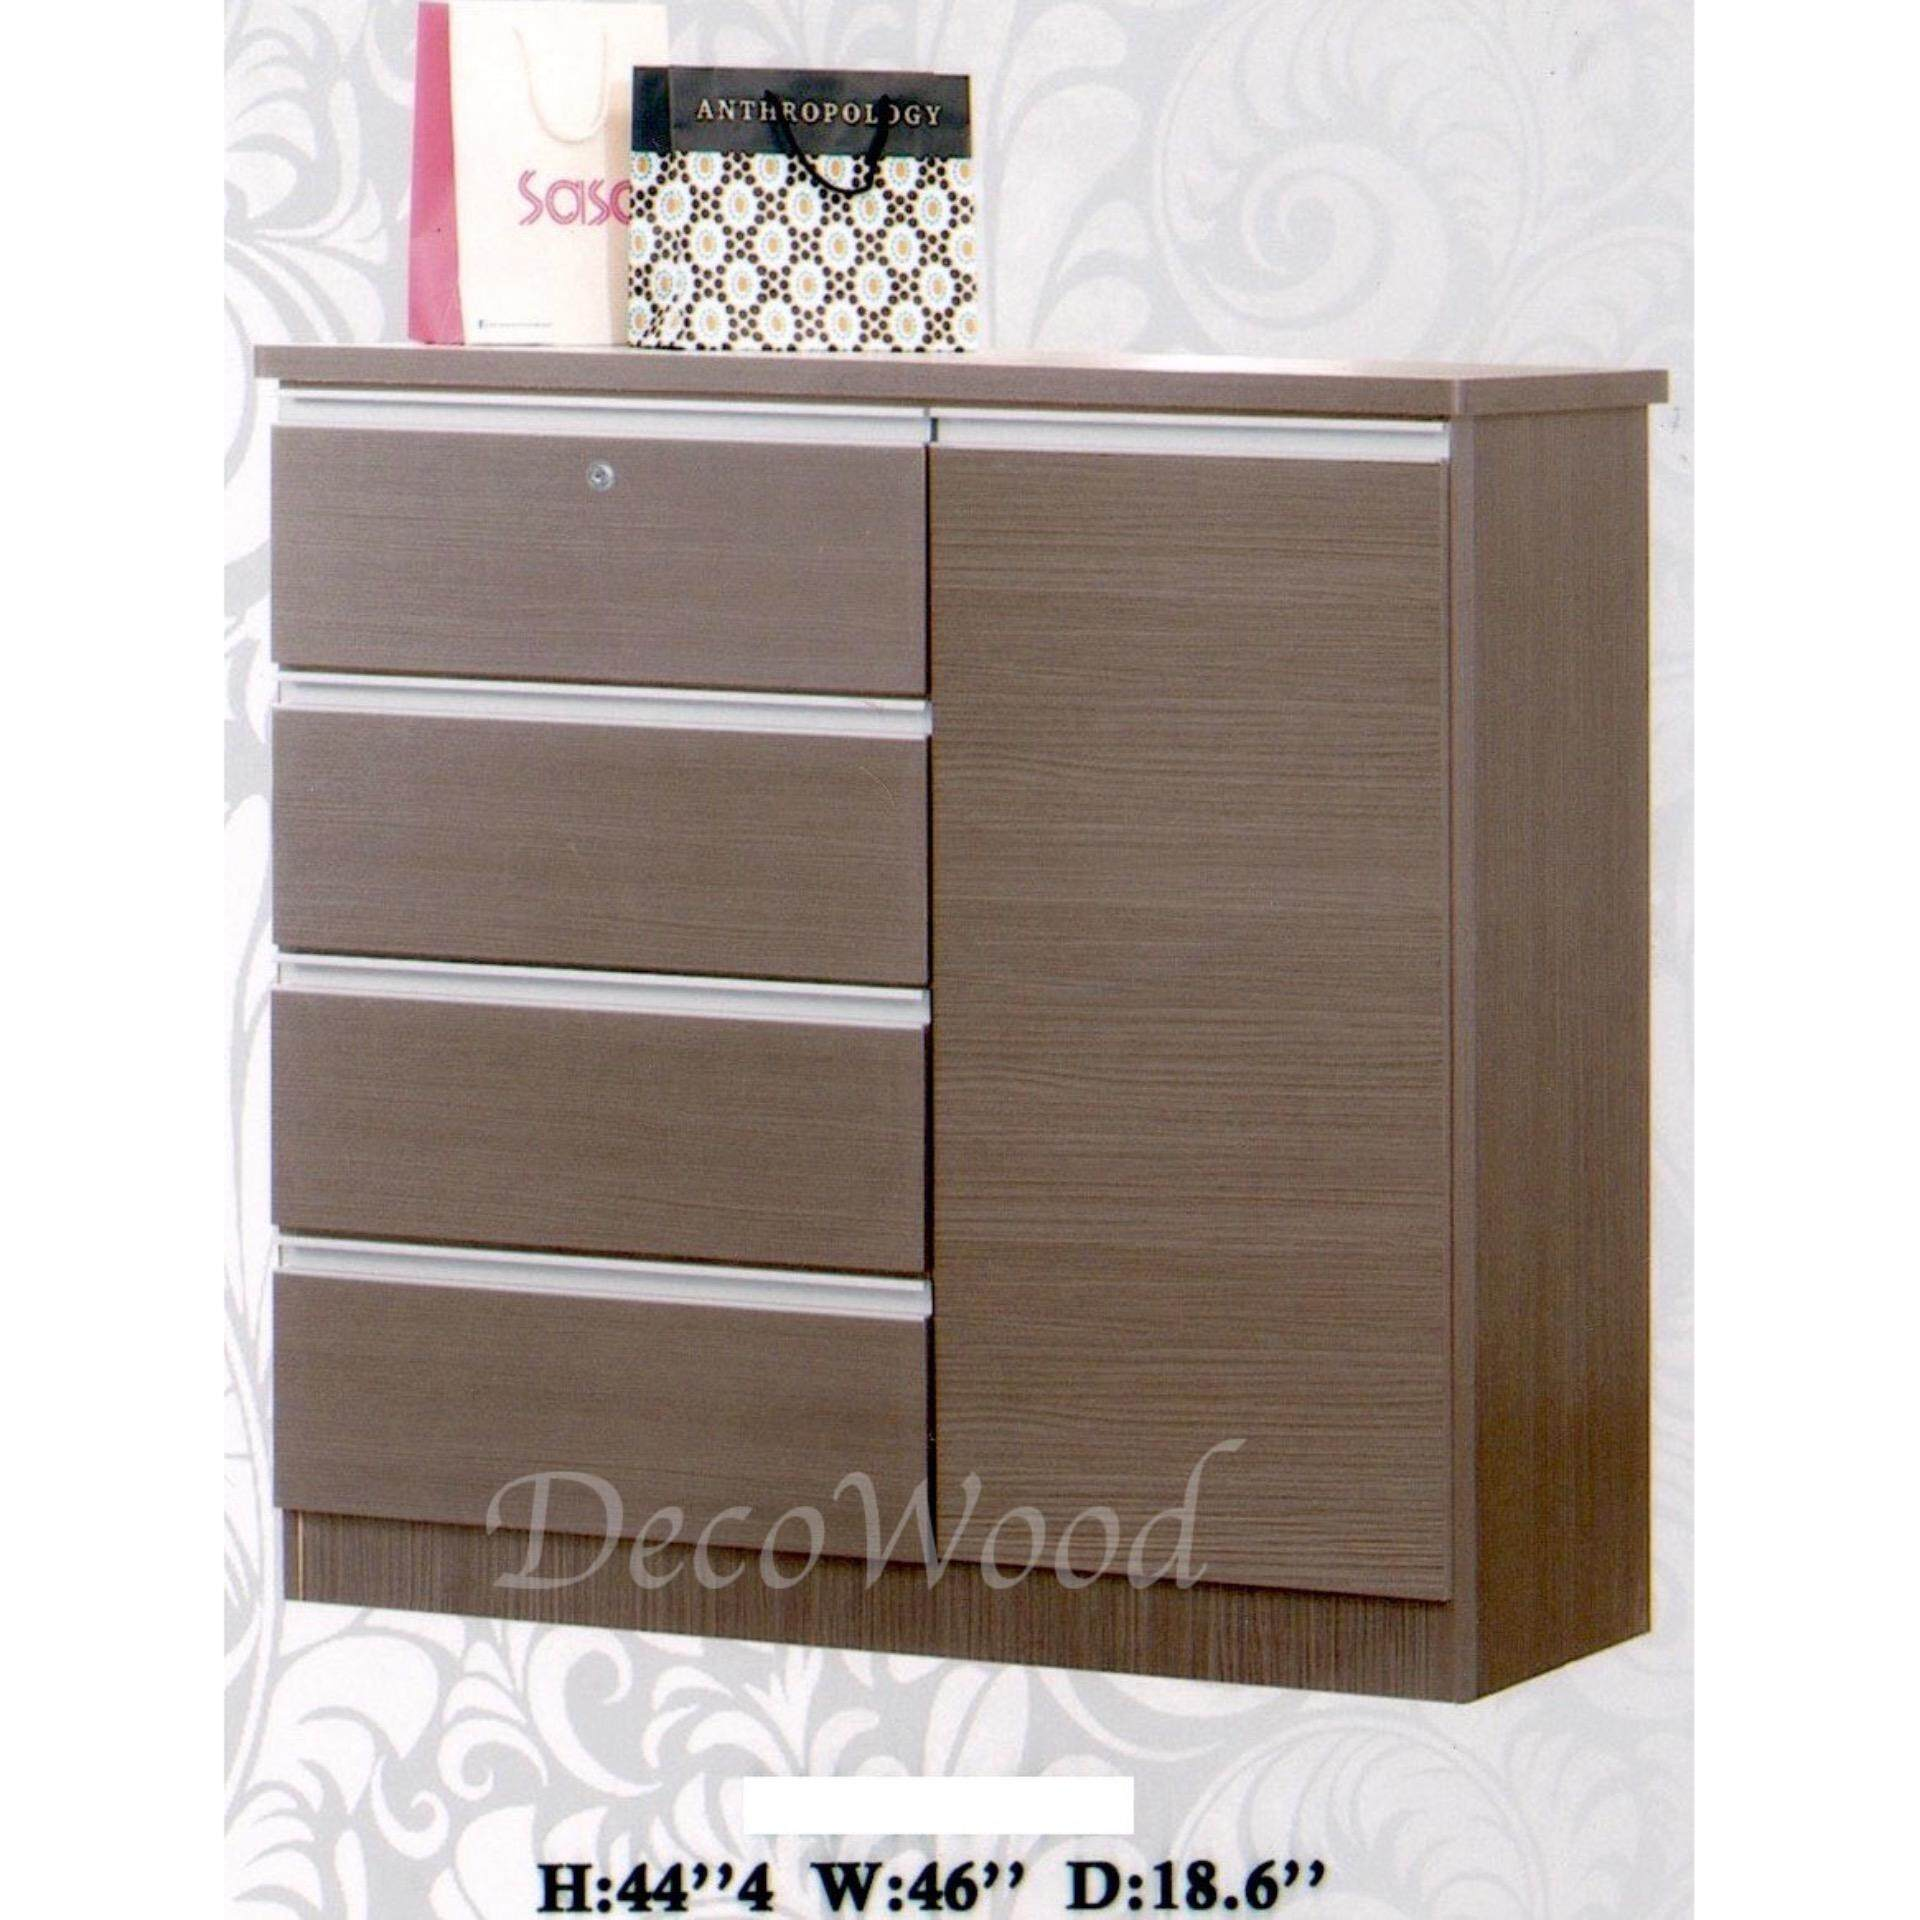 Ready-Fixed 5 Pull-Out Door Solid Strong Drawer Chest With Cloth Hanging Compartment(Light Brown) Pre Order 2 Week L1170MM X W470MM X H1128MM